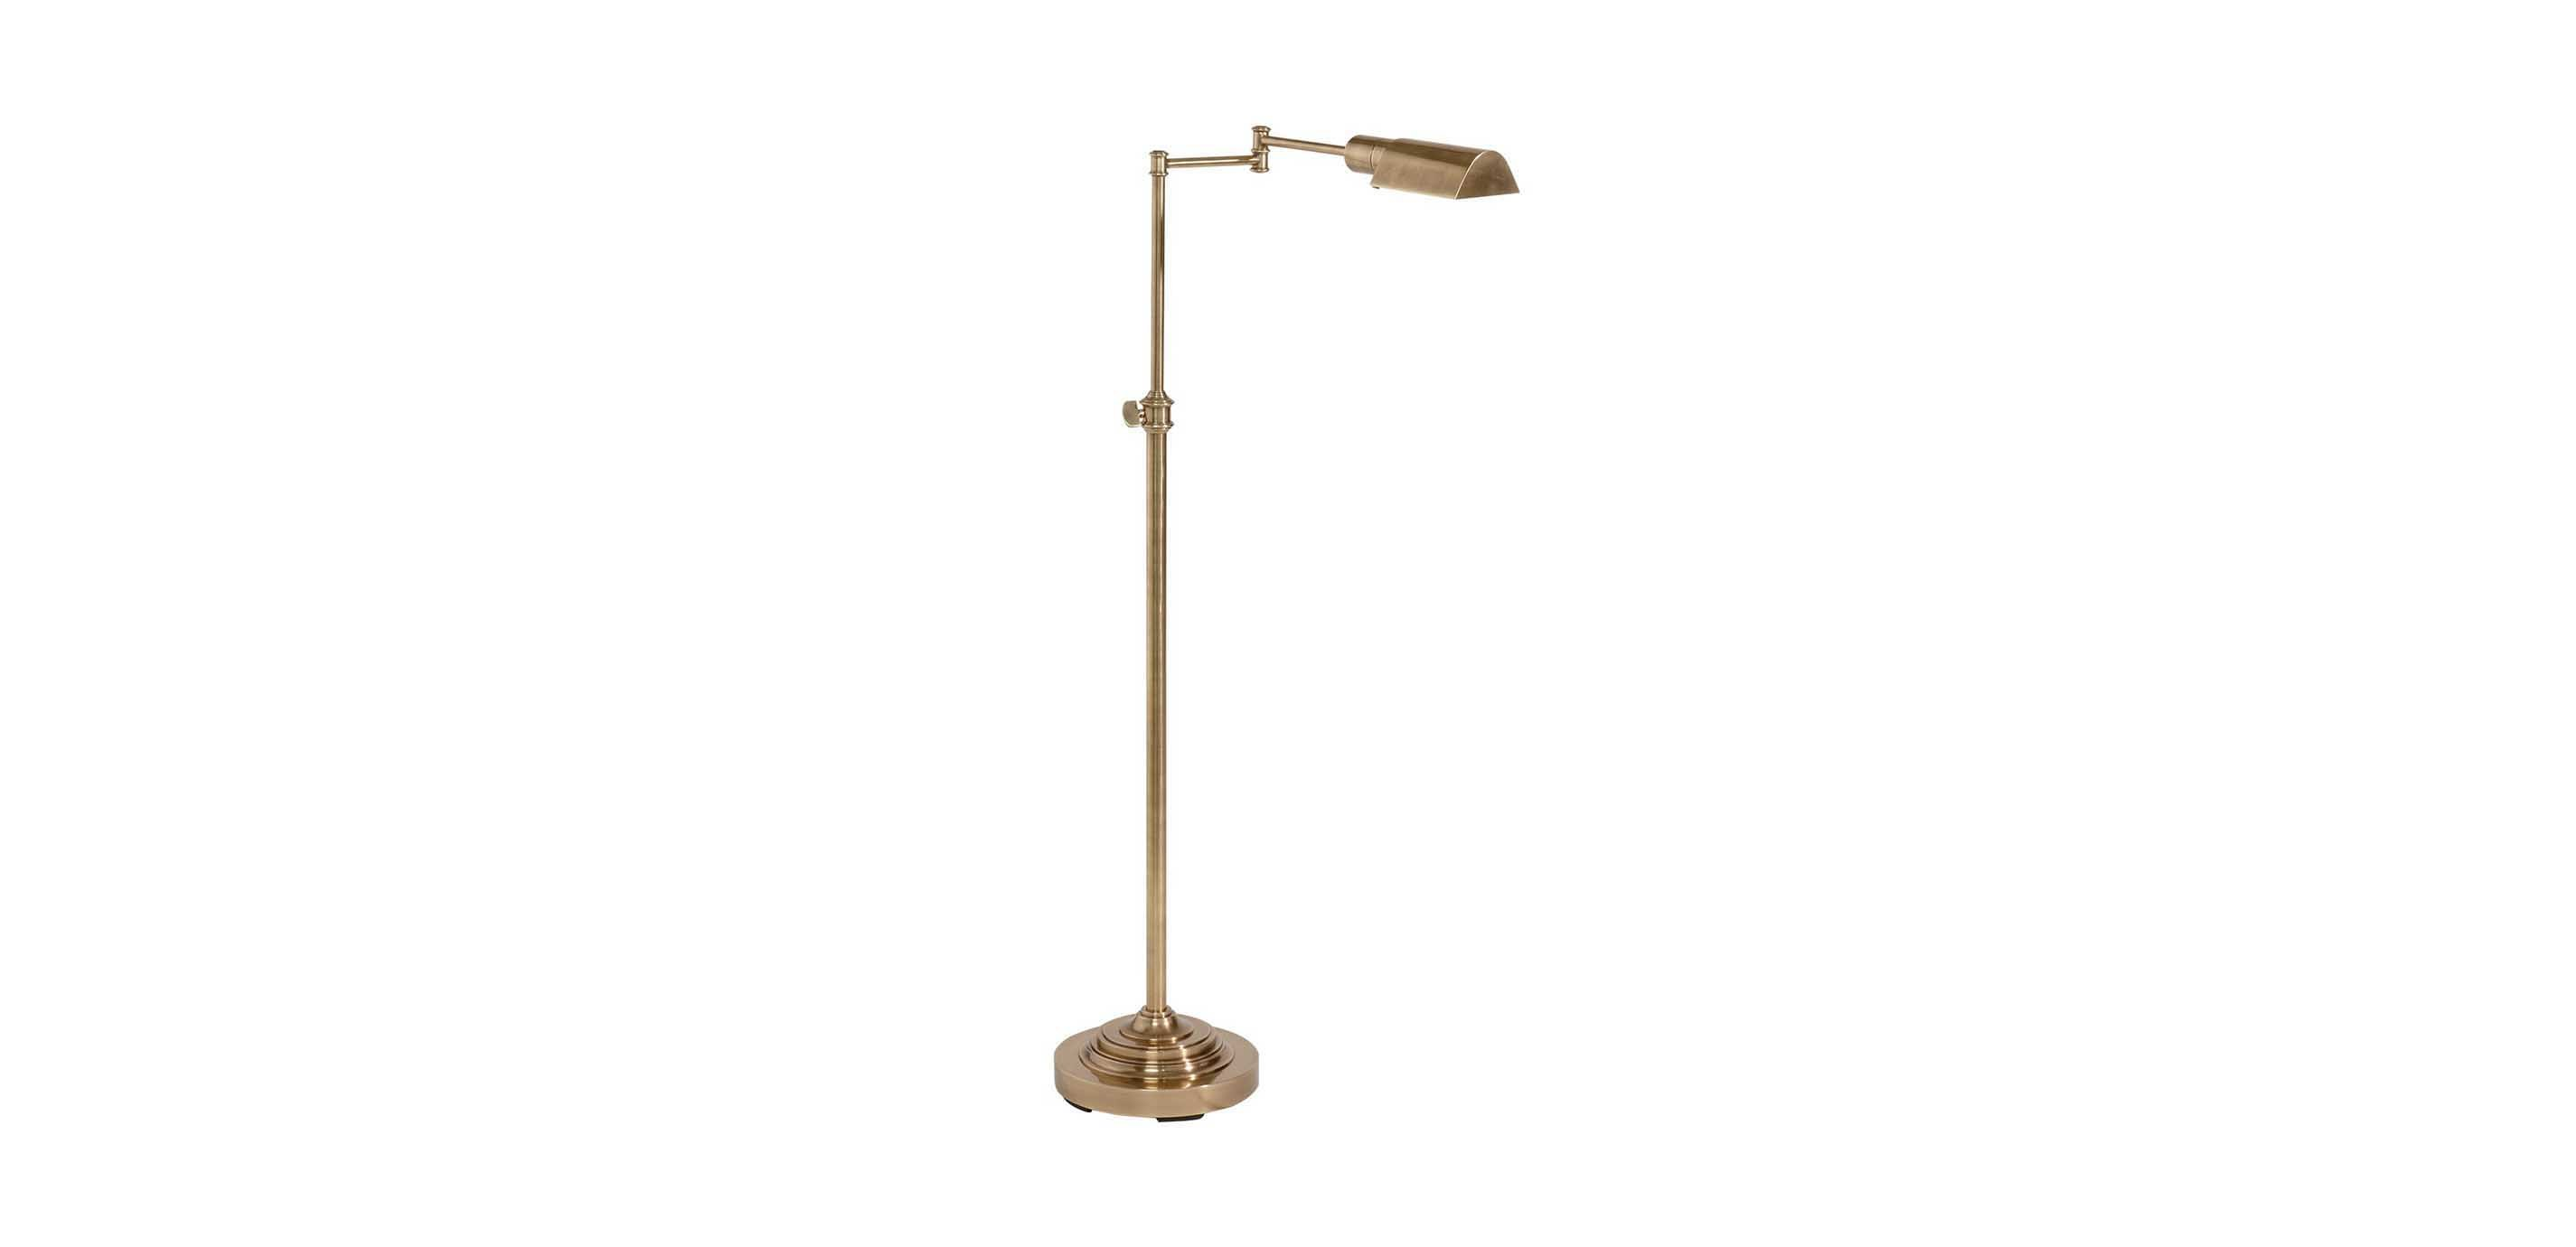 Brass pharmacy floor lamp floor lamps images brass pharmacy floor lamp largegray mozeypictures Gallery